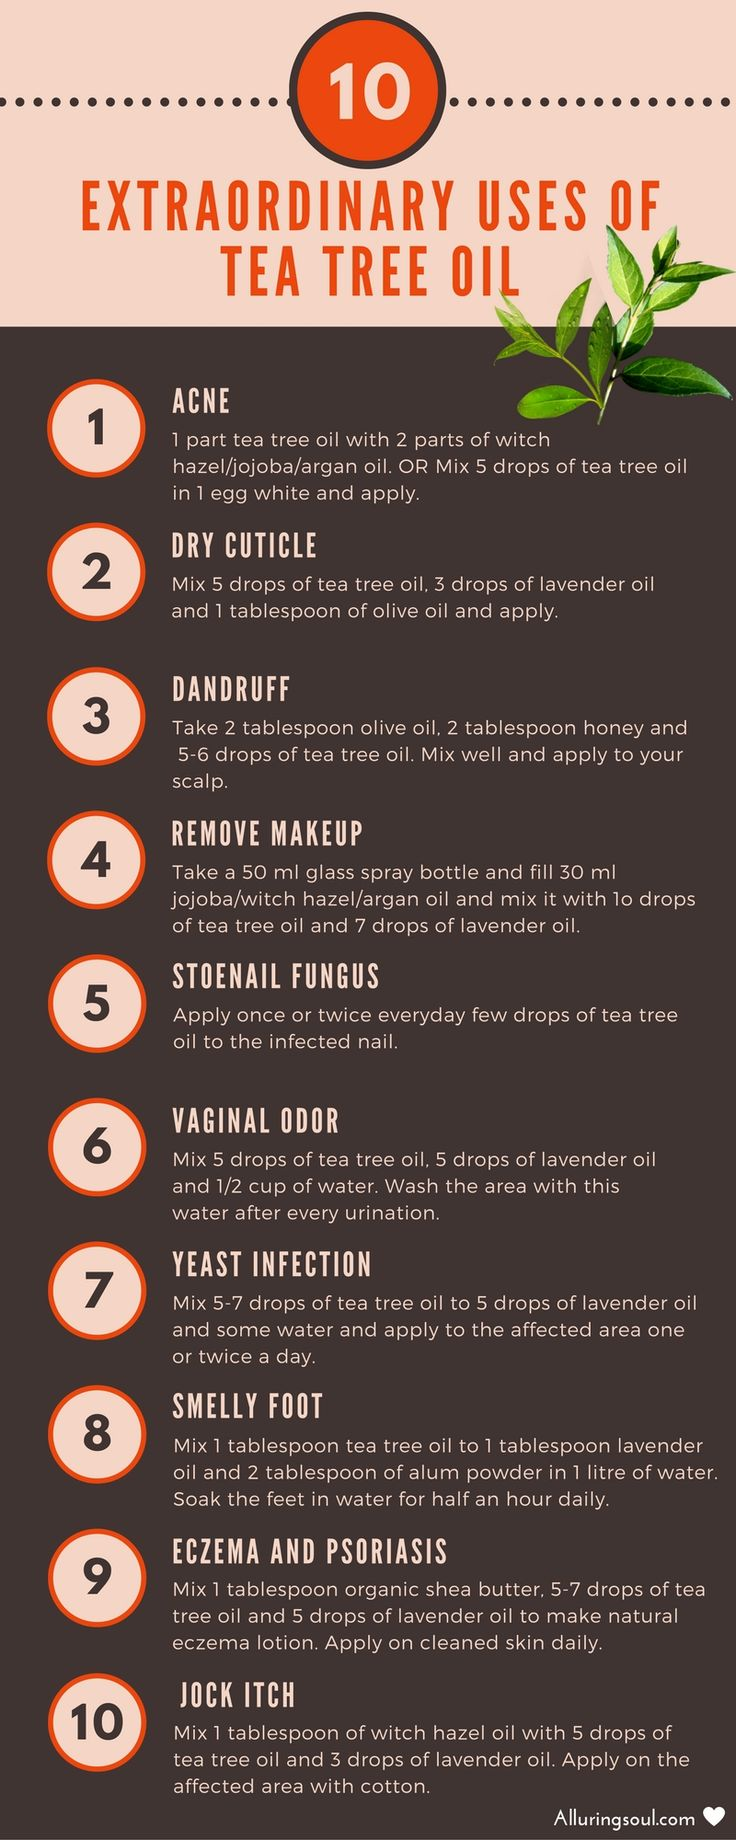 Tea Tree Oil Uses – Amazing Benefits for Skin and Hair